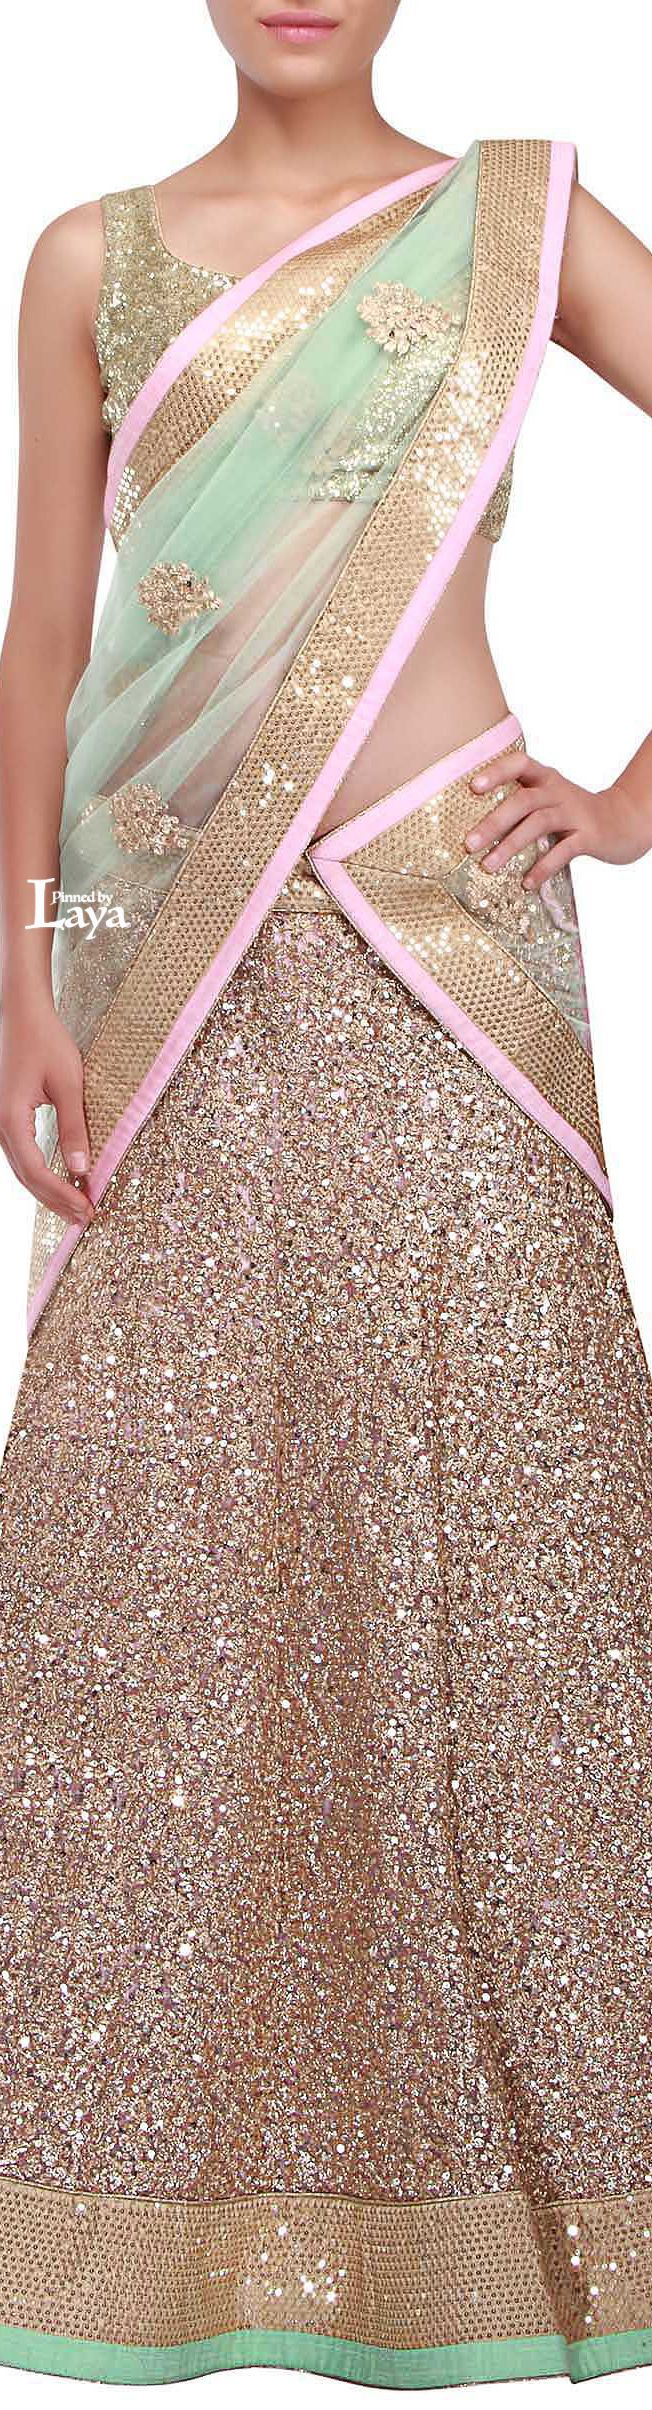 Sparkle in this gold sequin bridal lehenga. Indian bride, wedding outfit ♔LAYA♔BRIDAL LEHENGA♔